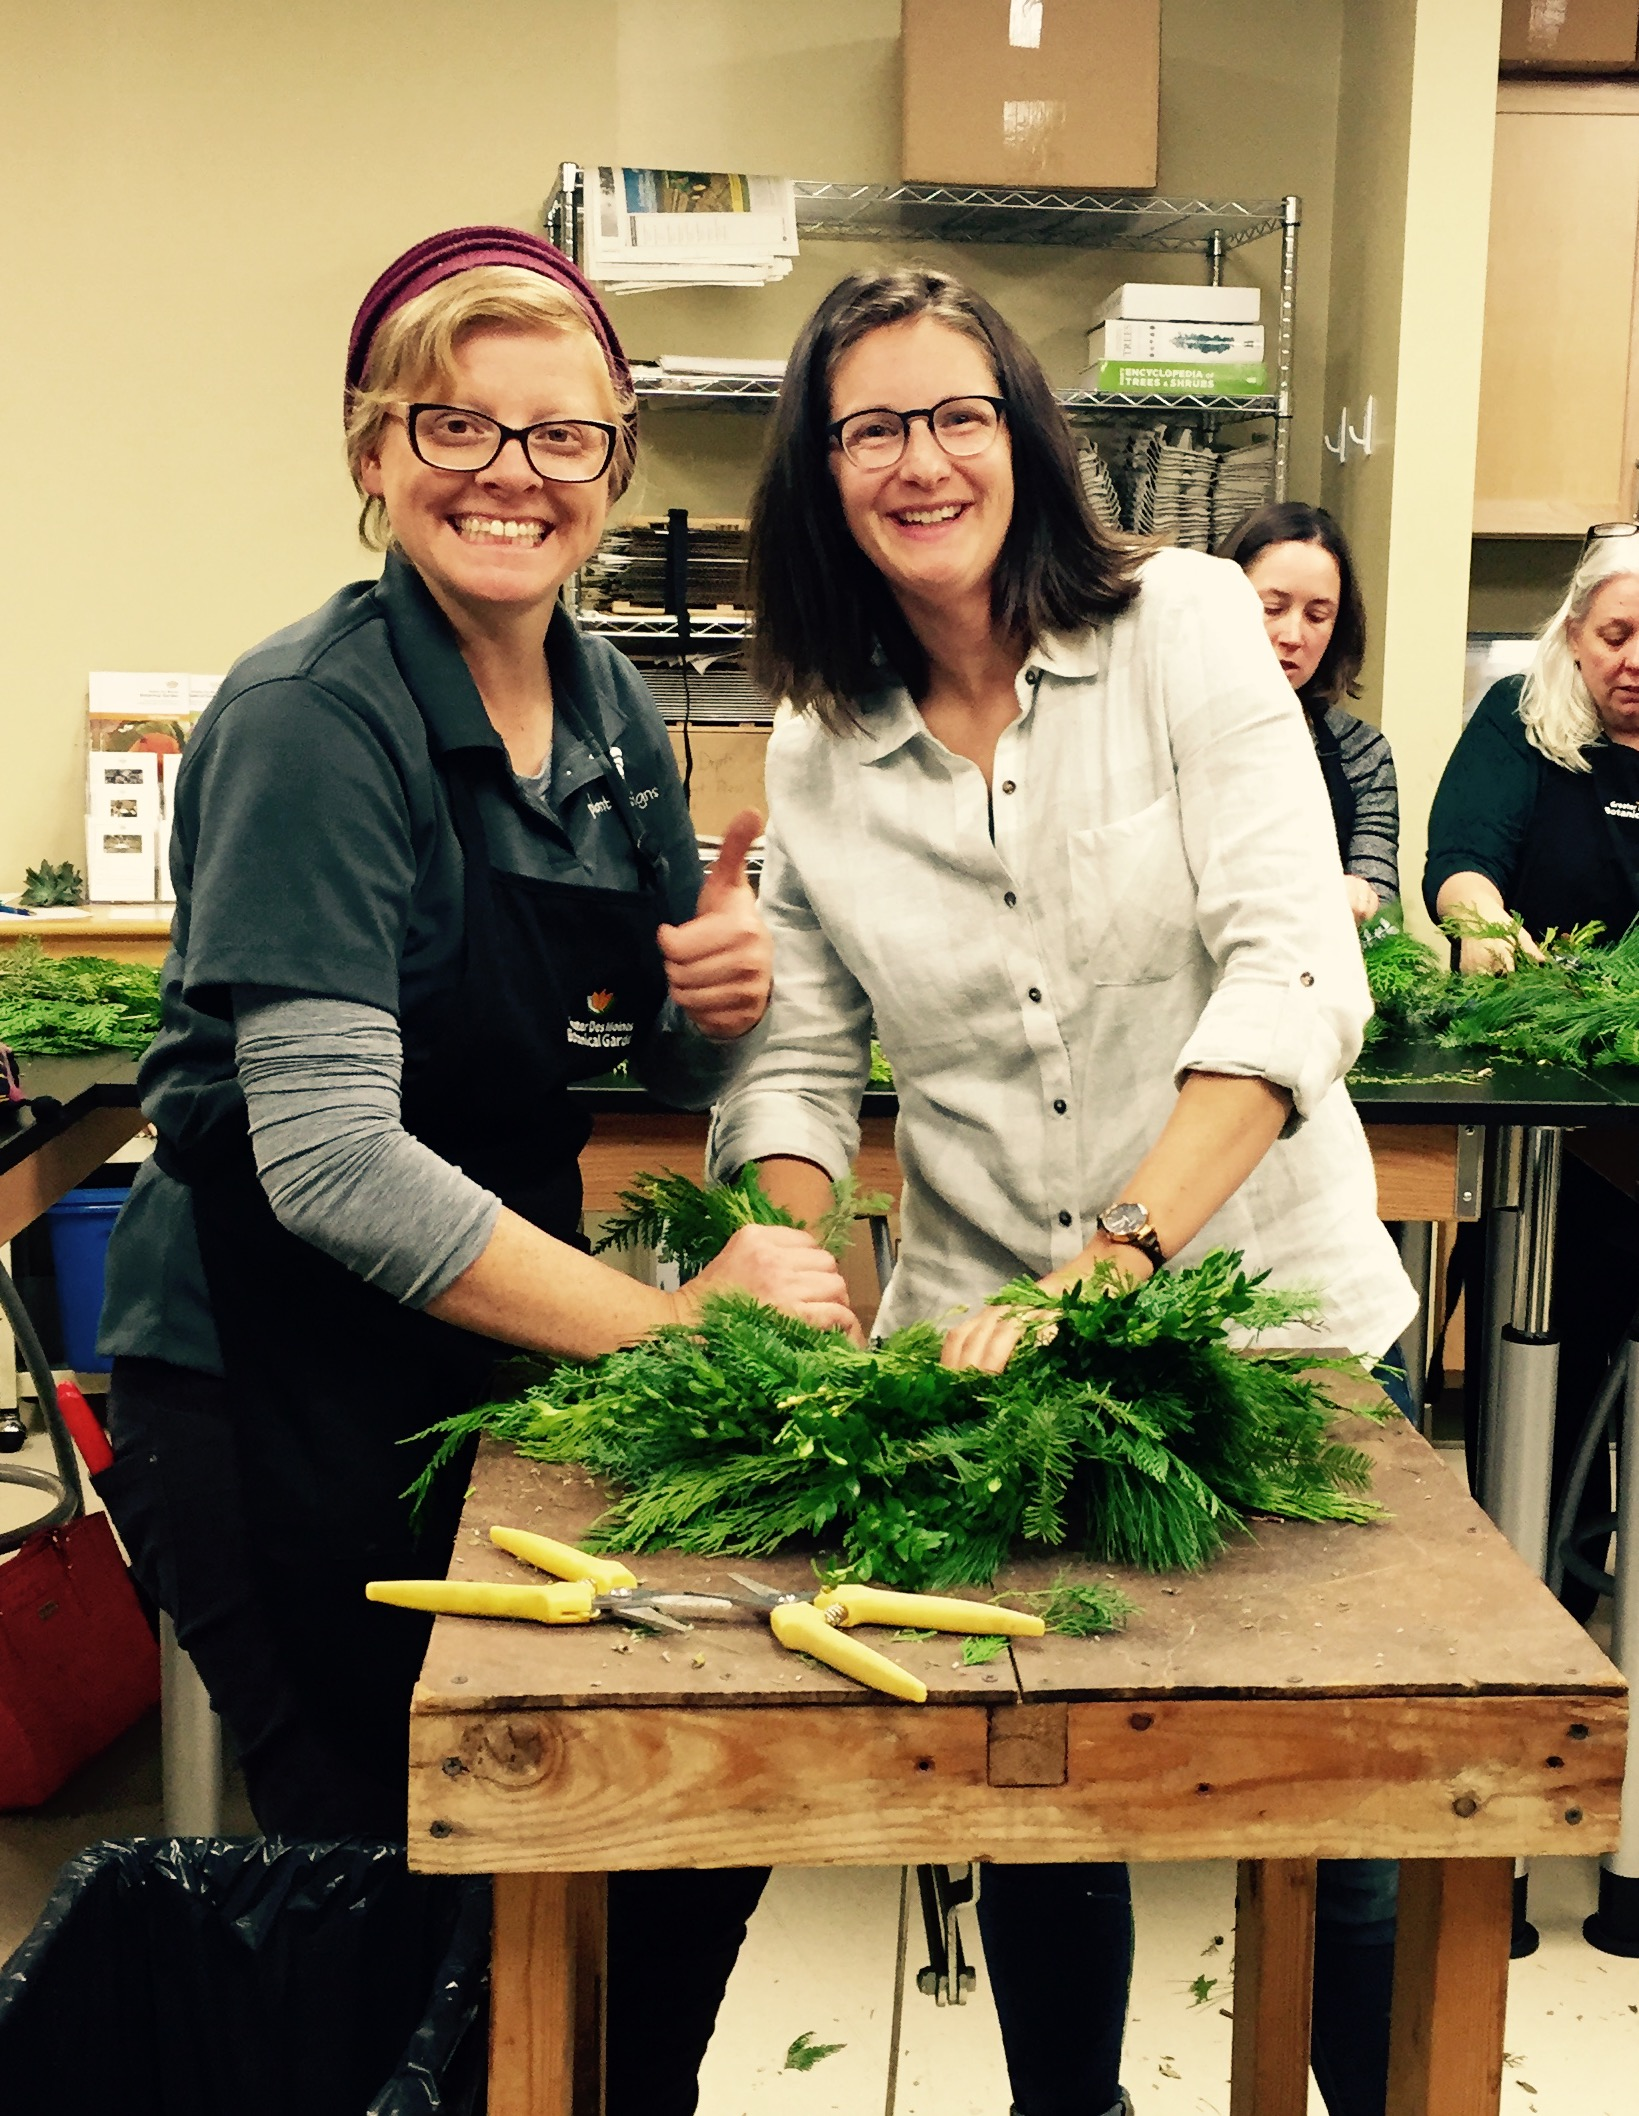 Enjoying more free time at a wreath making class at The Botanical Gardens taught by Tara from Plant Life Designs